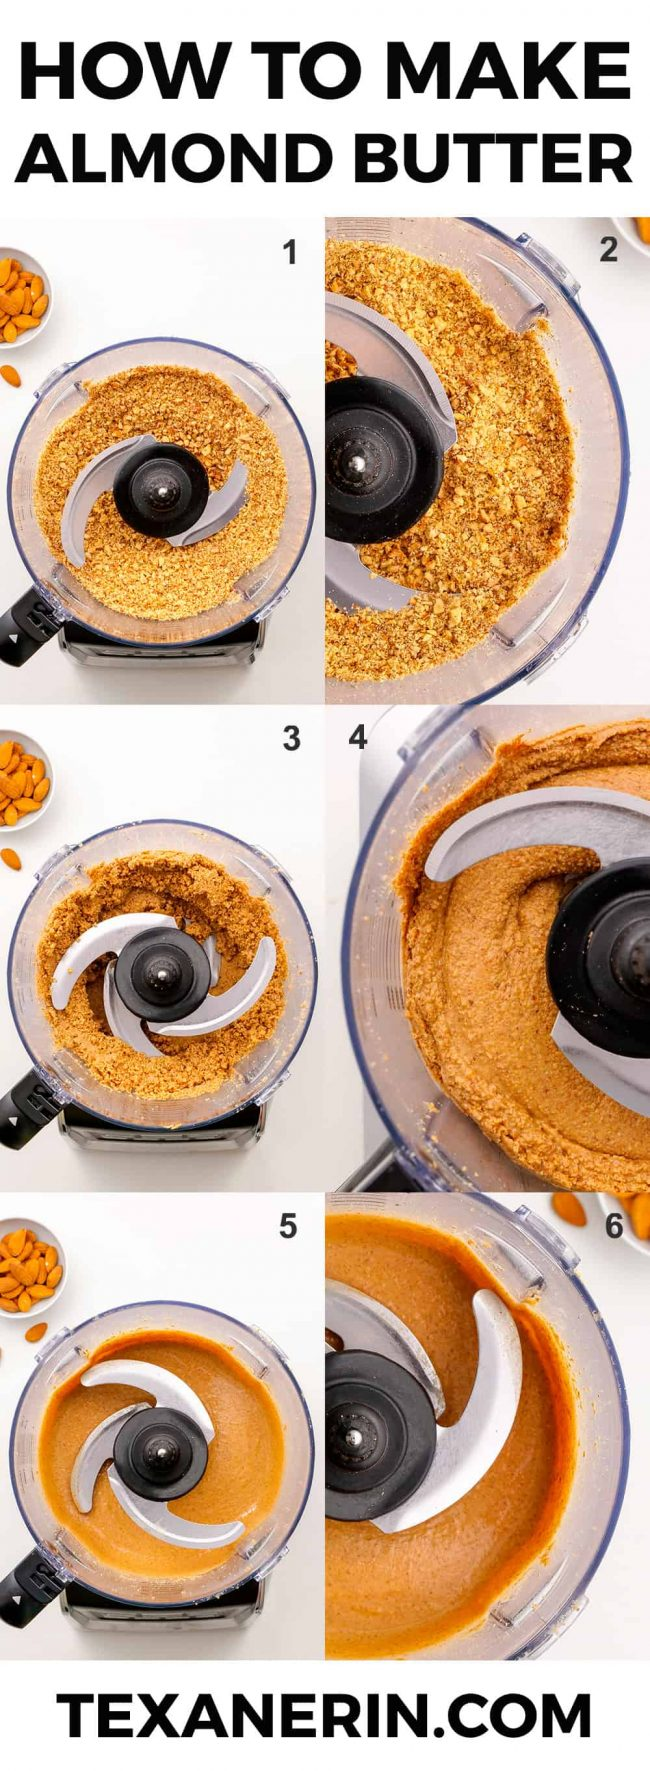 How to Make Almond Butter – the ultimate guide! All you need are almonds and a food processor for your own homemade almond butter that costs a fraction of the store-bought kind. So easy!